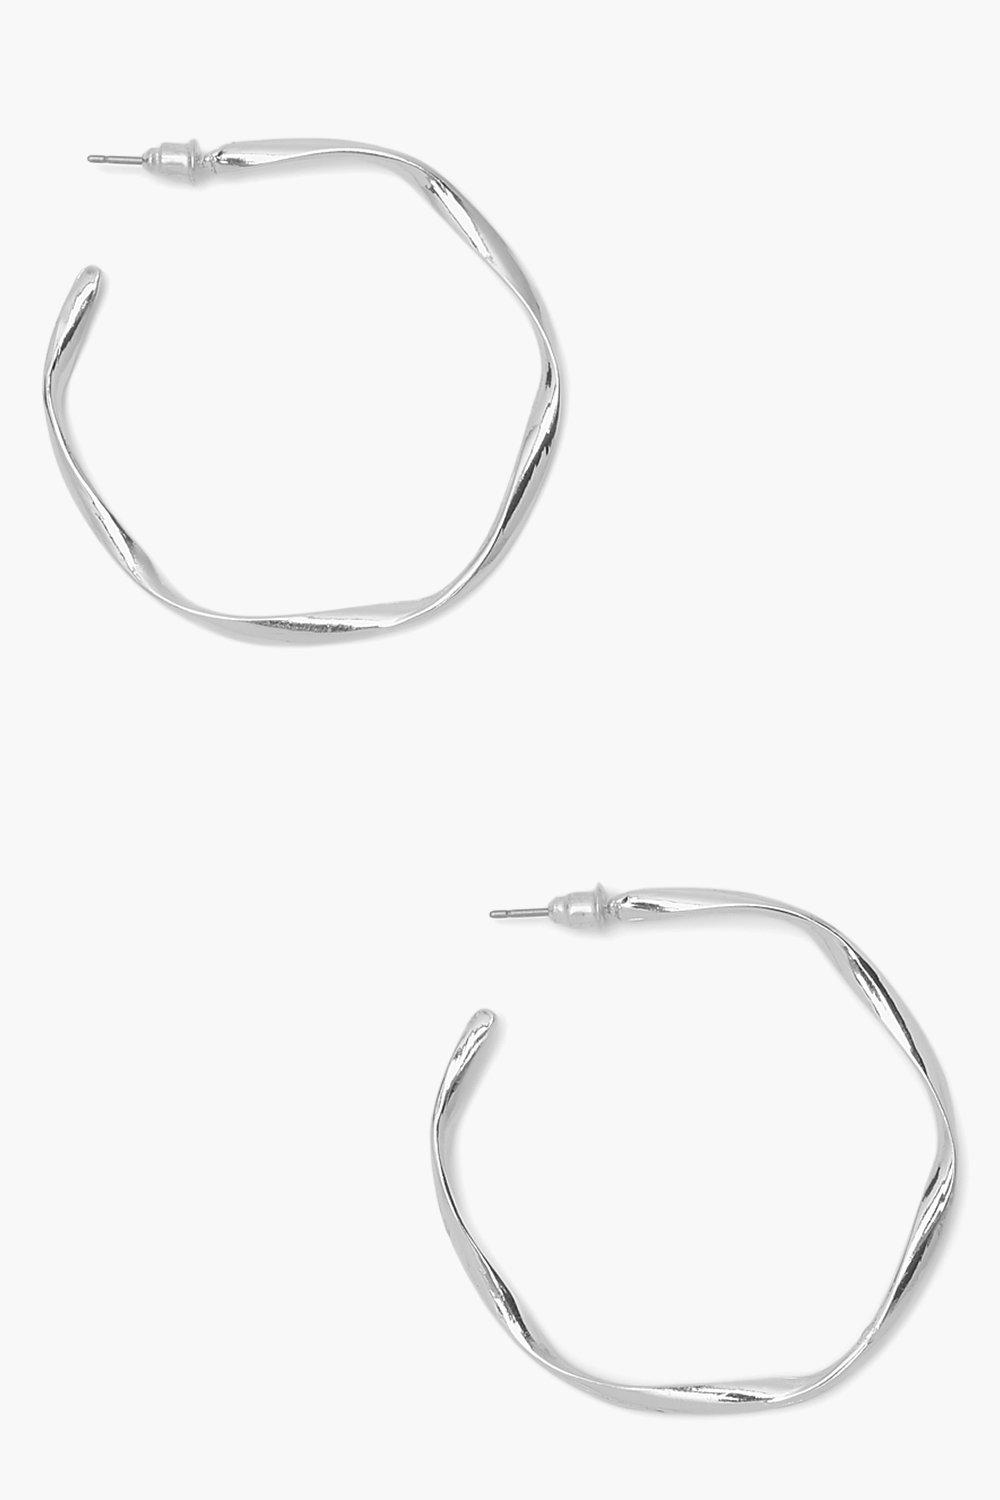 Boohoo Loose Twist Hammered Hoop Earrings, Silver